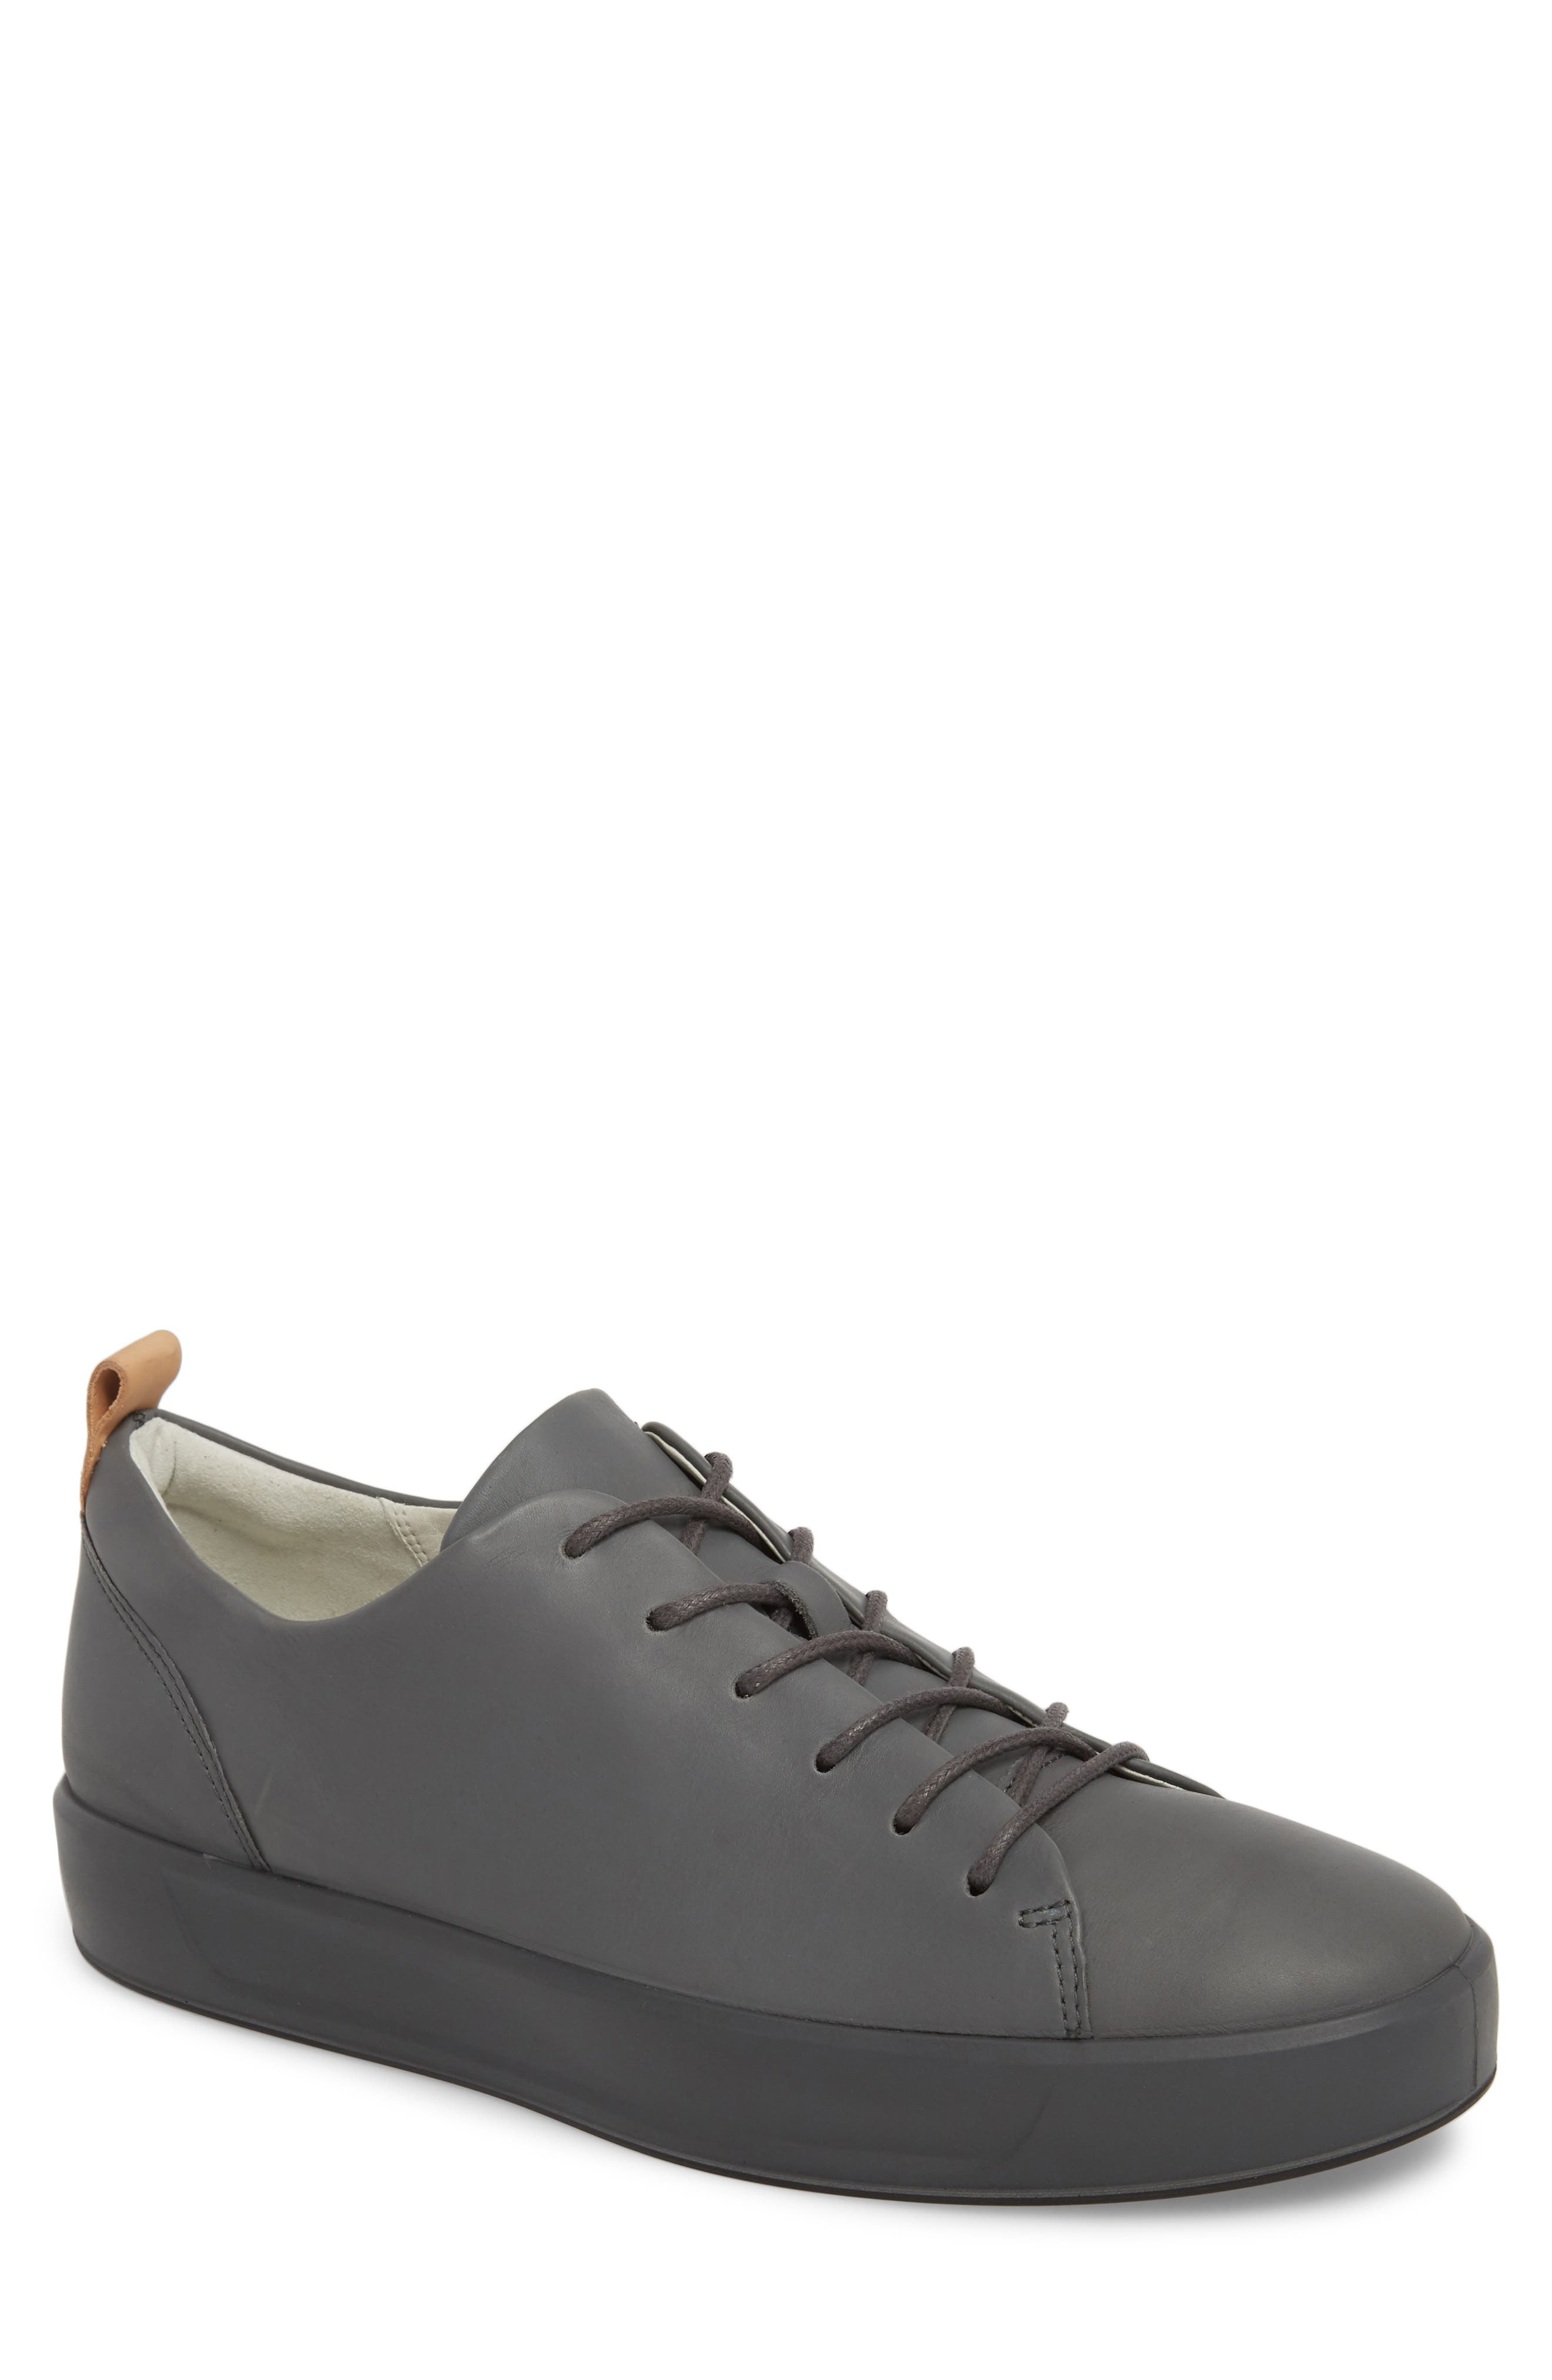 Soft 8 Low Top Sneaker,                         Main,                         color, Urban Grey Leather